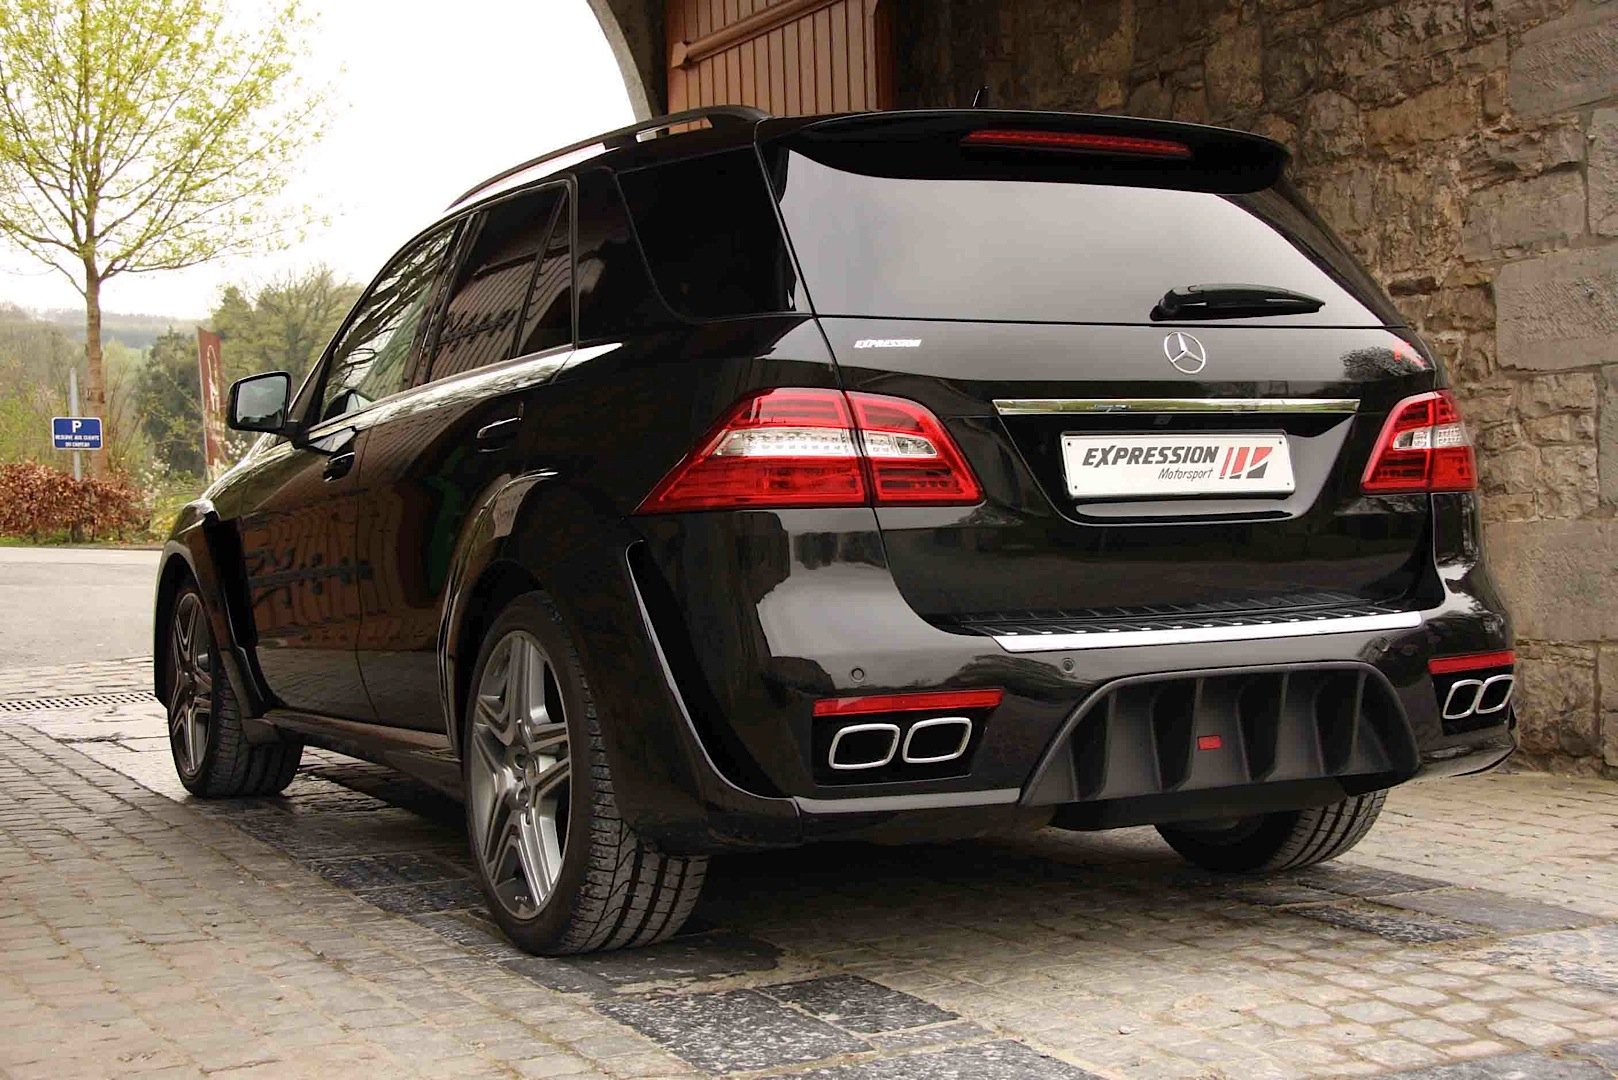 ml 63 amg wide by expression preys on small children video photo gallery autoevolution. Black Bedroom Furniture Sets. Home Design Ideas